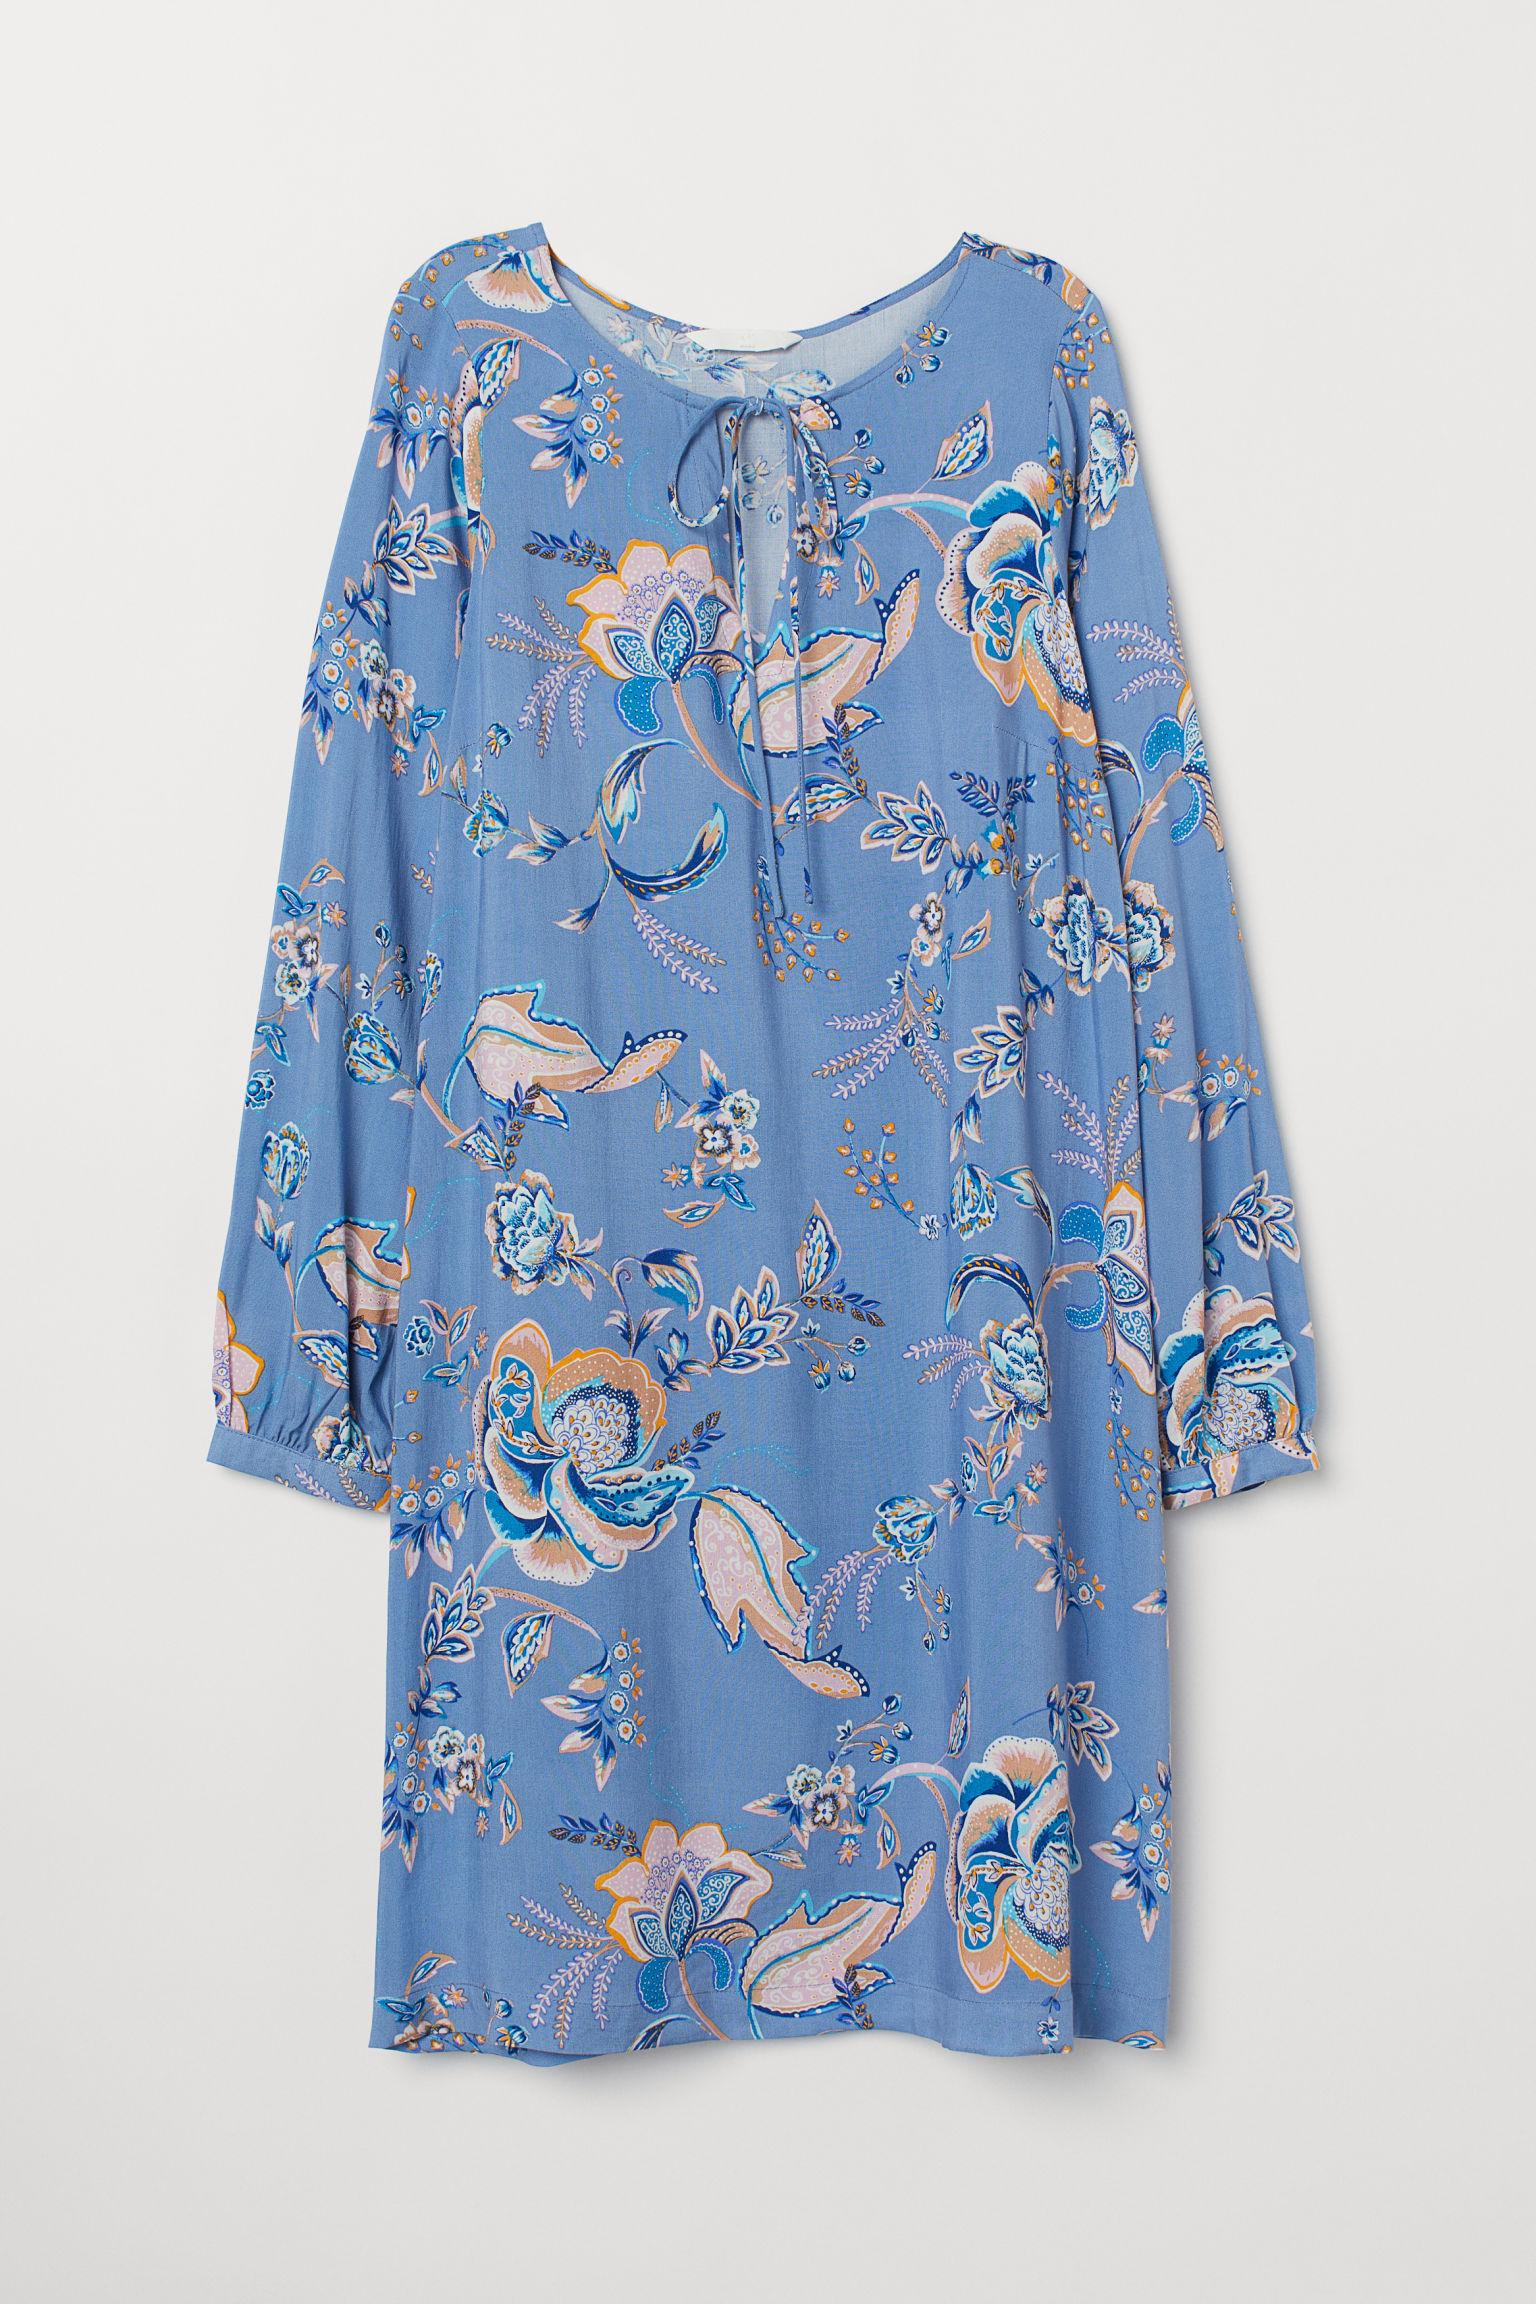 7d022ba50fb H M Mama Patterned Dress in Blue - Lyst